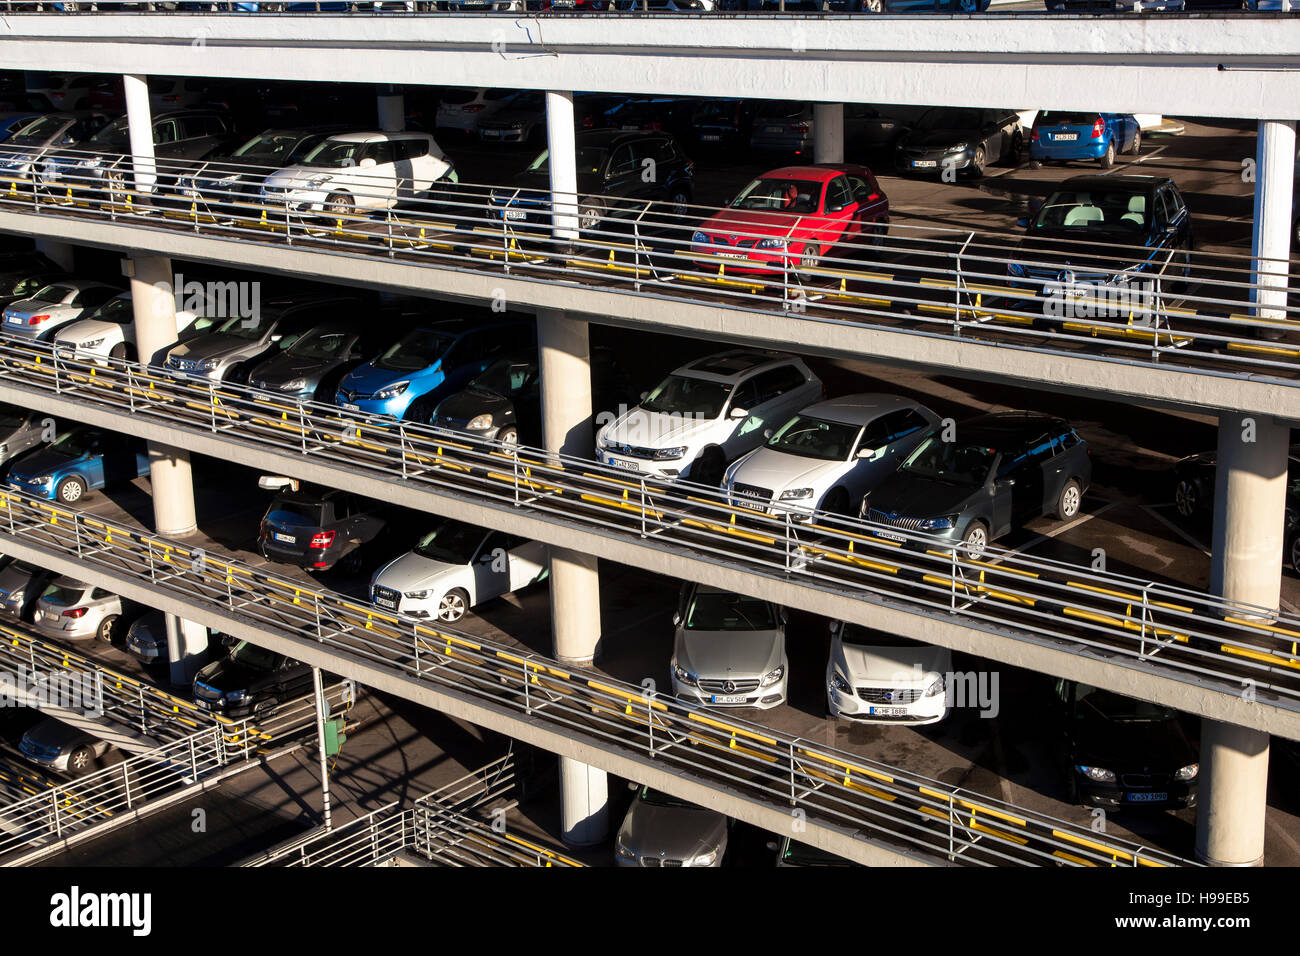 Europe, Germany, Cologne, multi-storey car park of the Kaufhof department store. - Stock Image